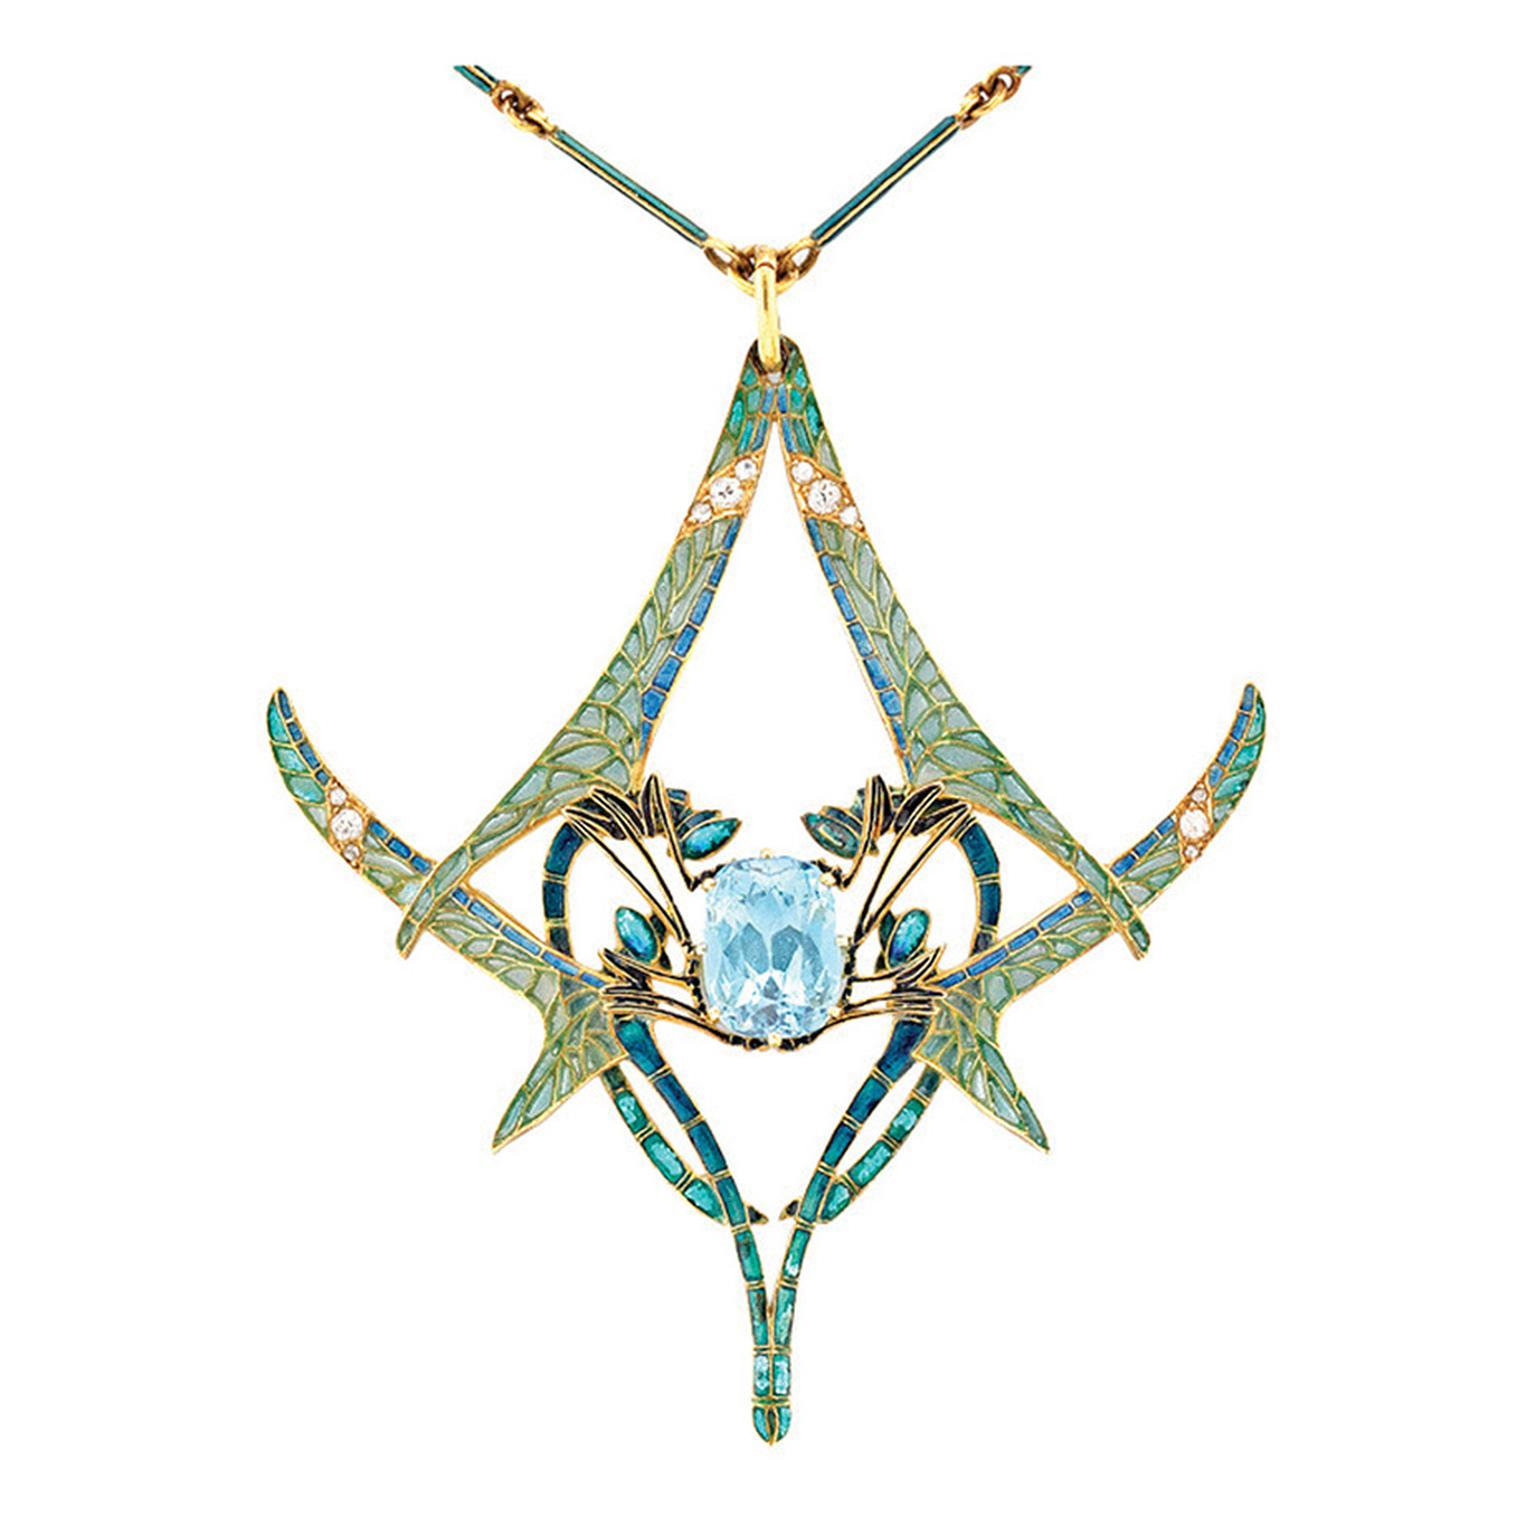 Important René Lalique dragonfly aquamarine pendant with plique-à-jour enamel wings, embellished with circular- and rose-cut diamonds.